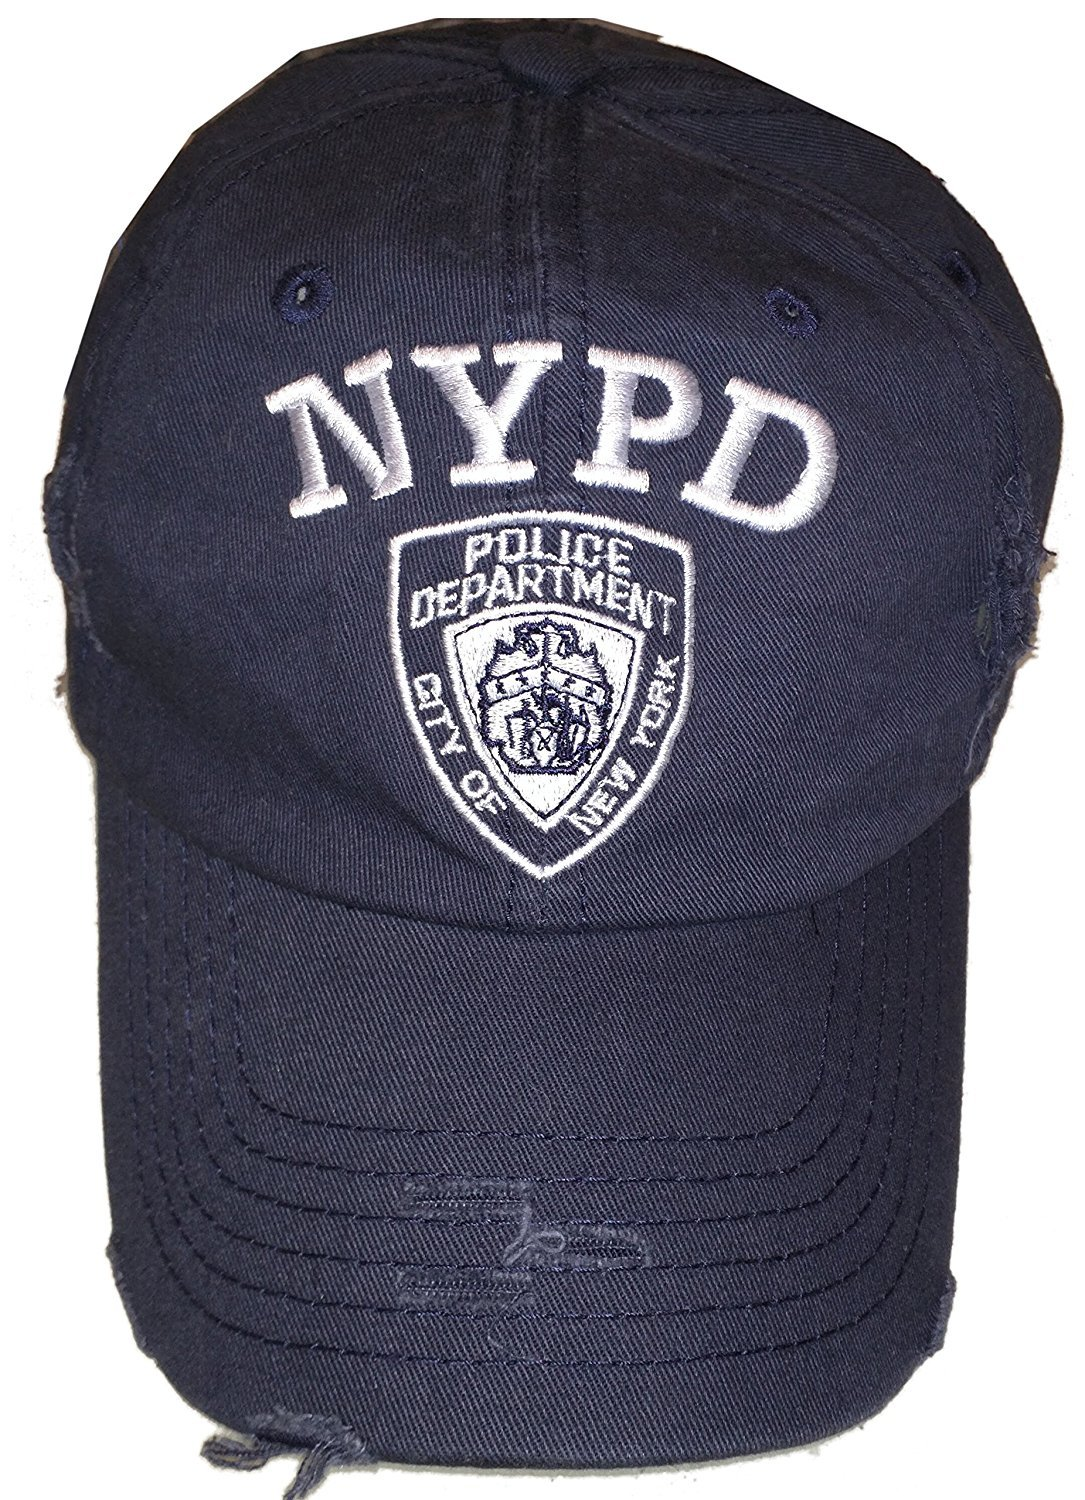 e6fee7709 Details about NYPD Baseball Hat New York Police Department Distressed White  Logo Navy Blue